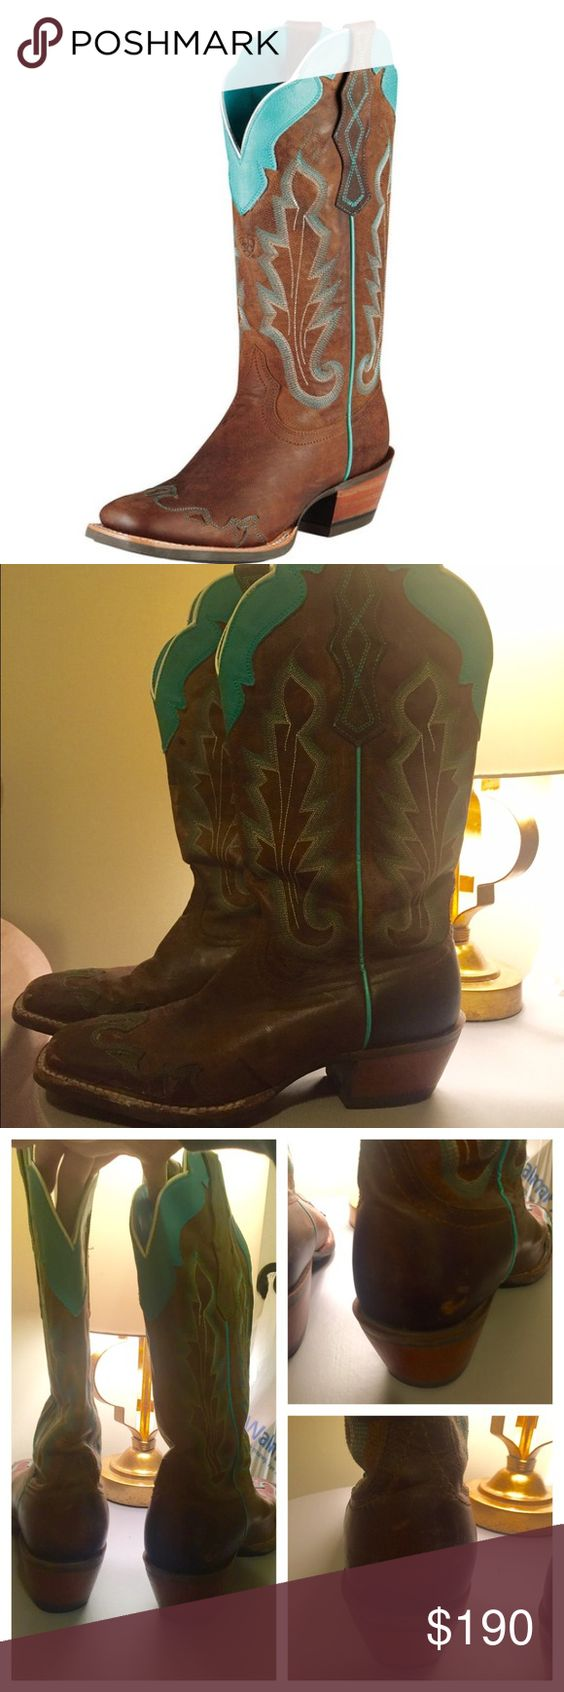 Heeled boots, Cowboy boots and Overalls on Pinterest